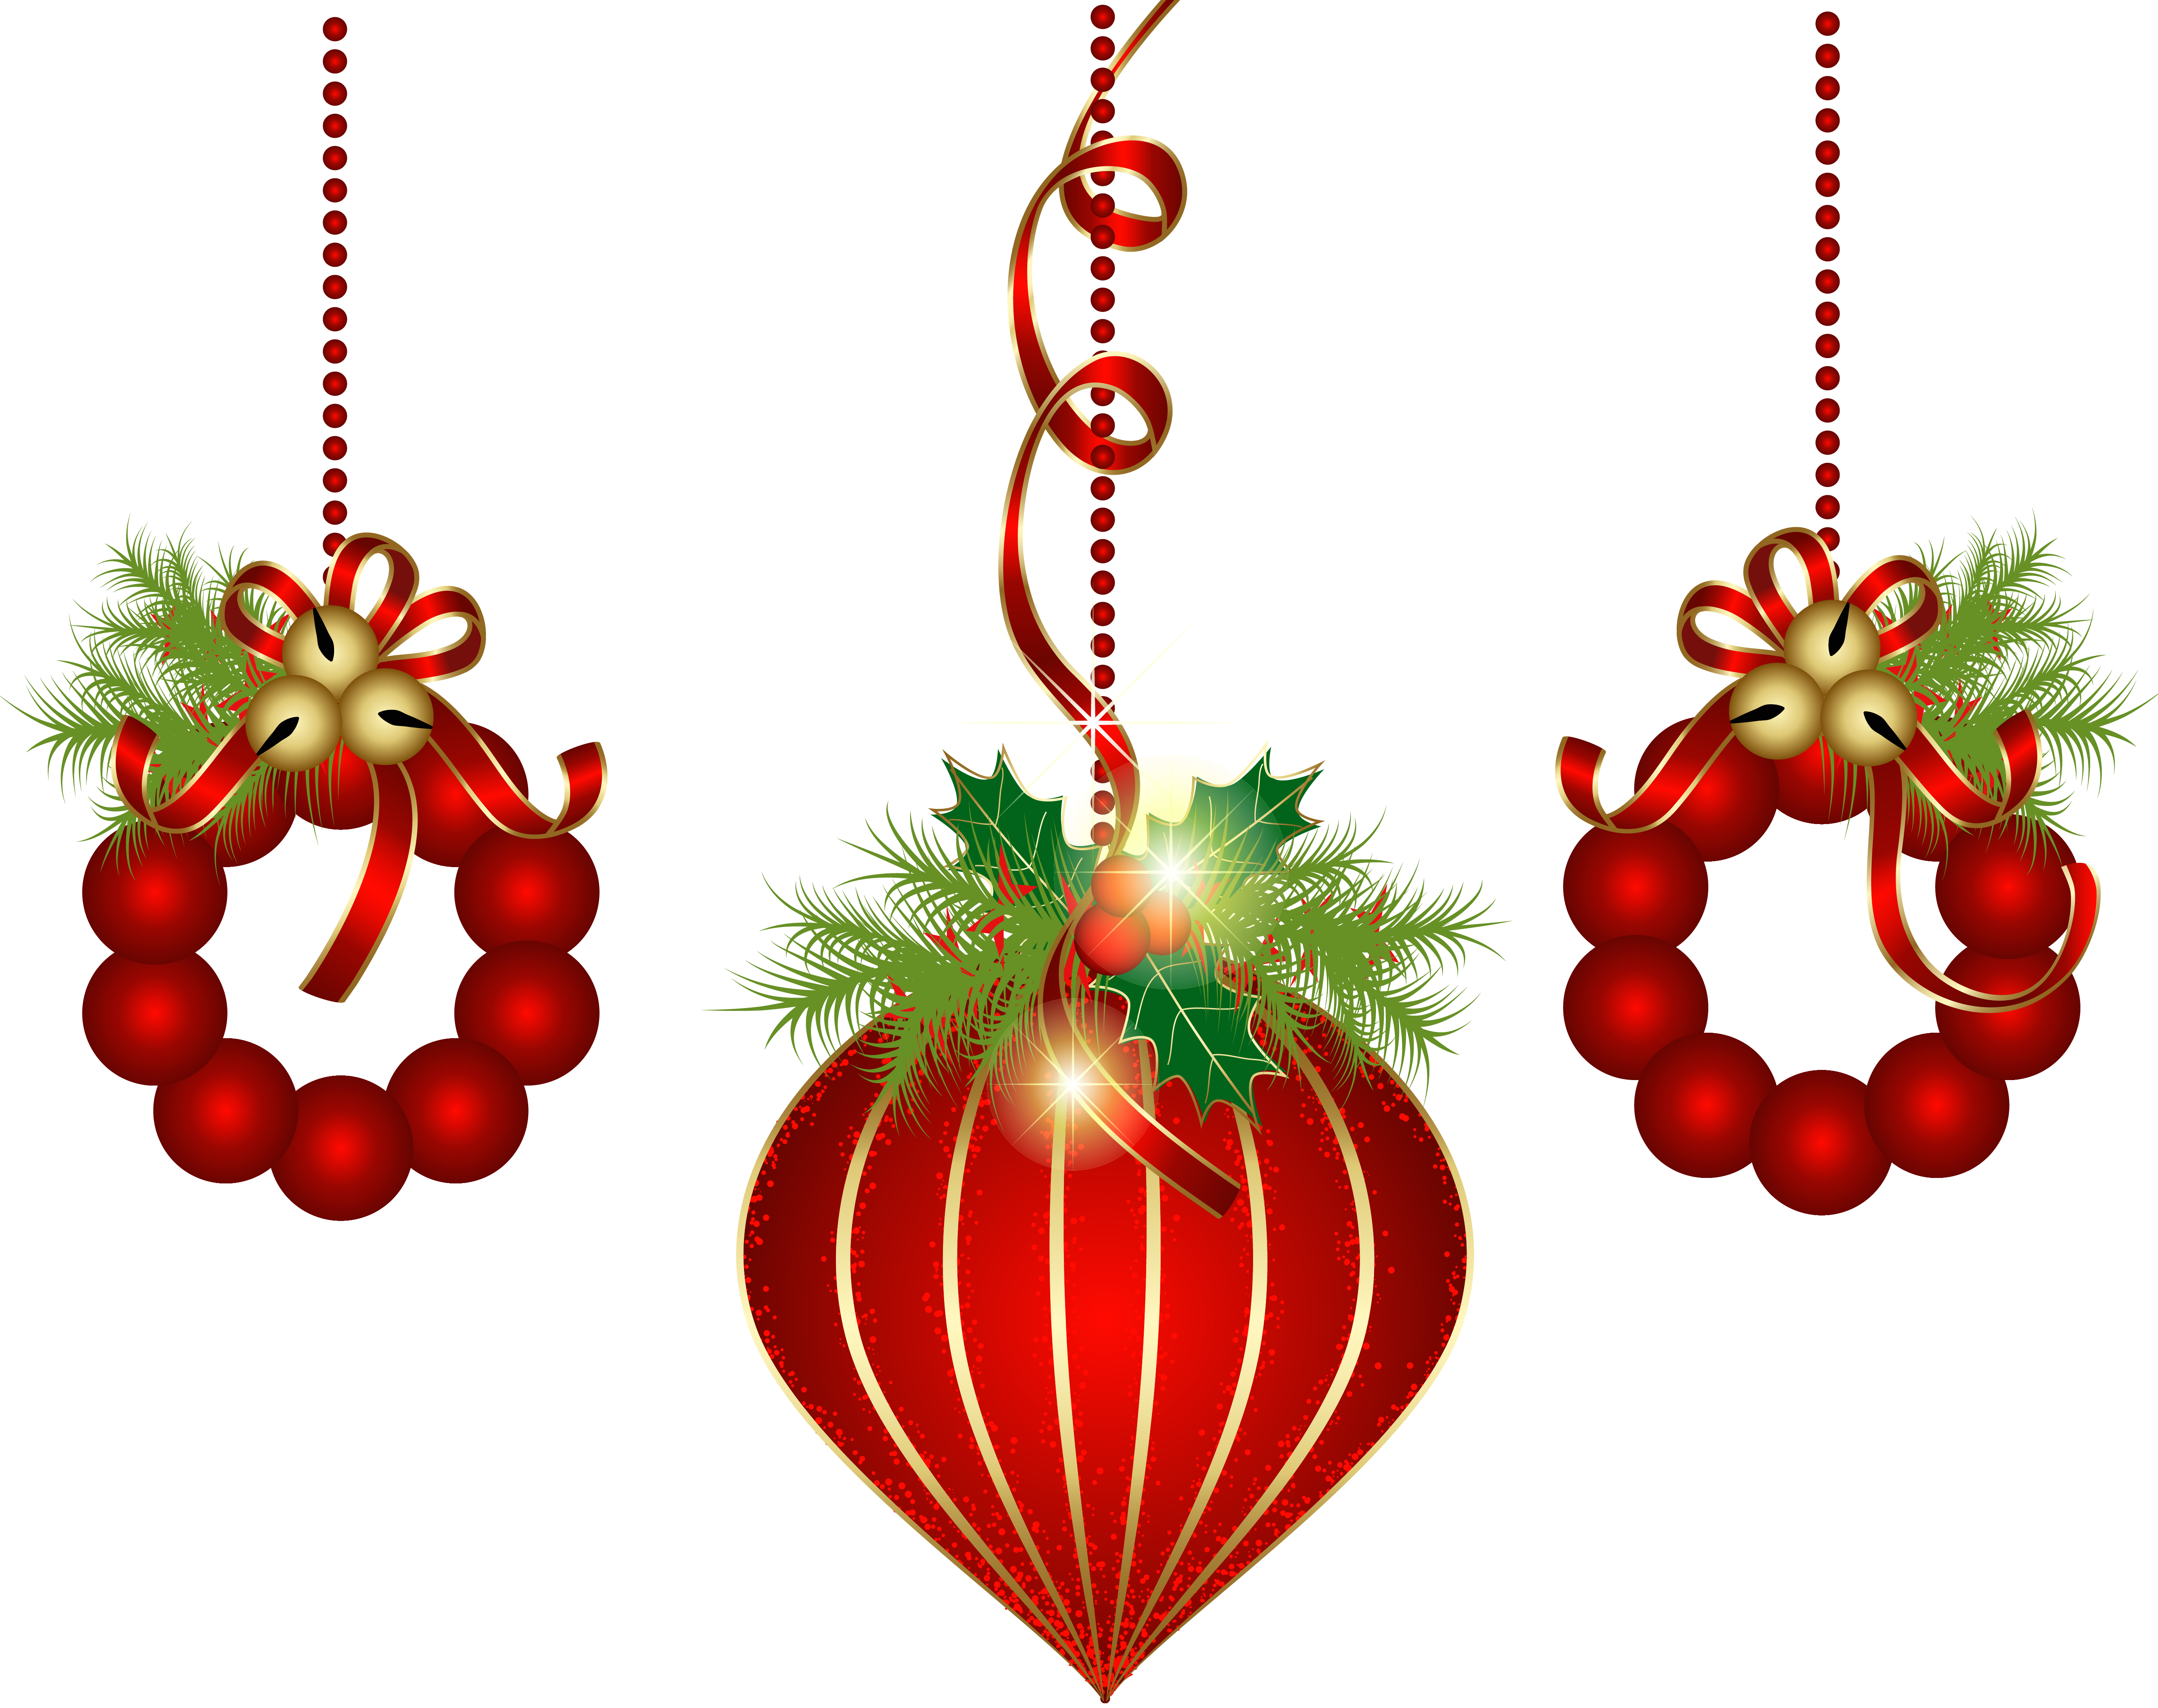 Fancy christmas ornaments background png. Transparent red clipart best